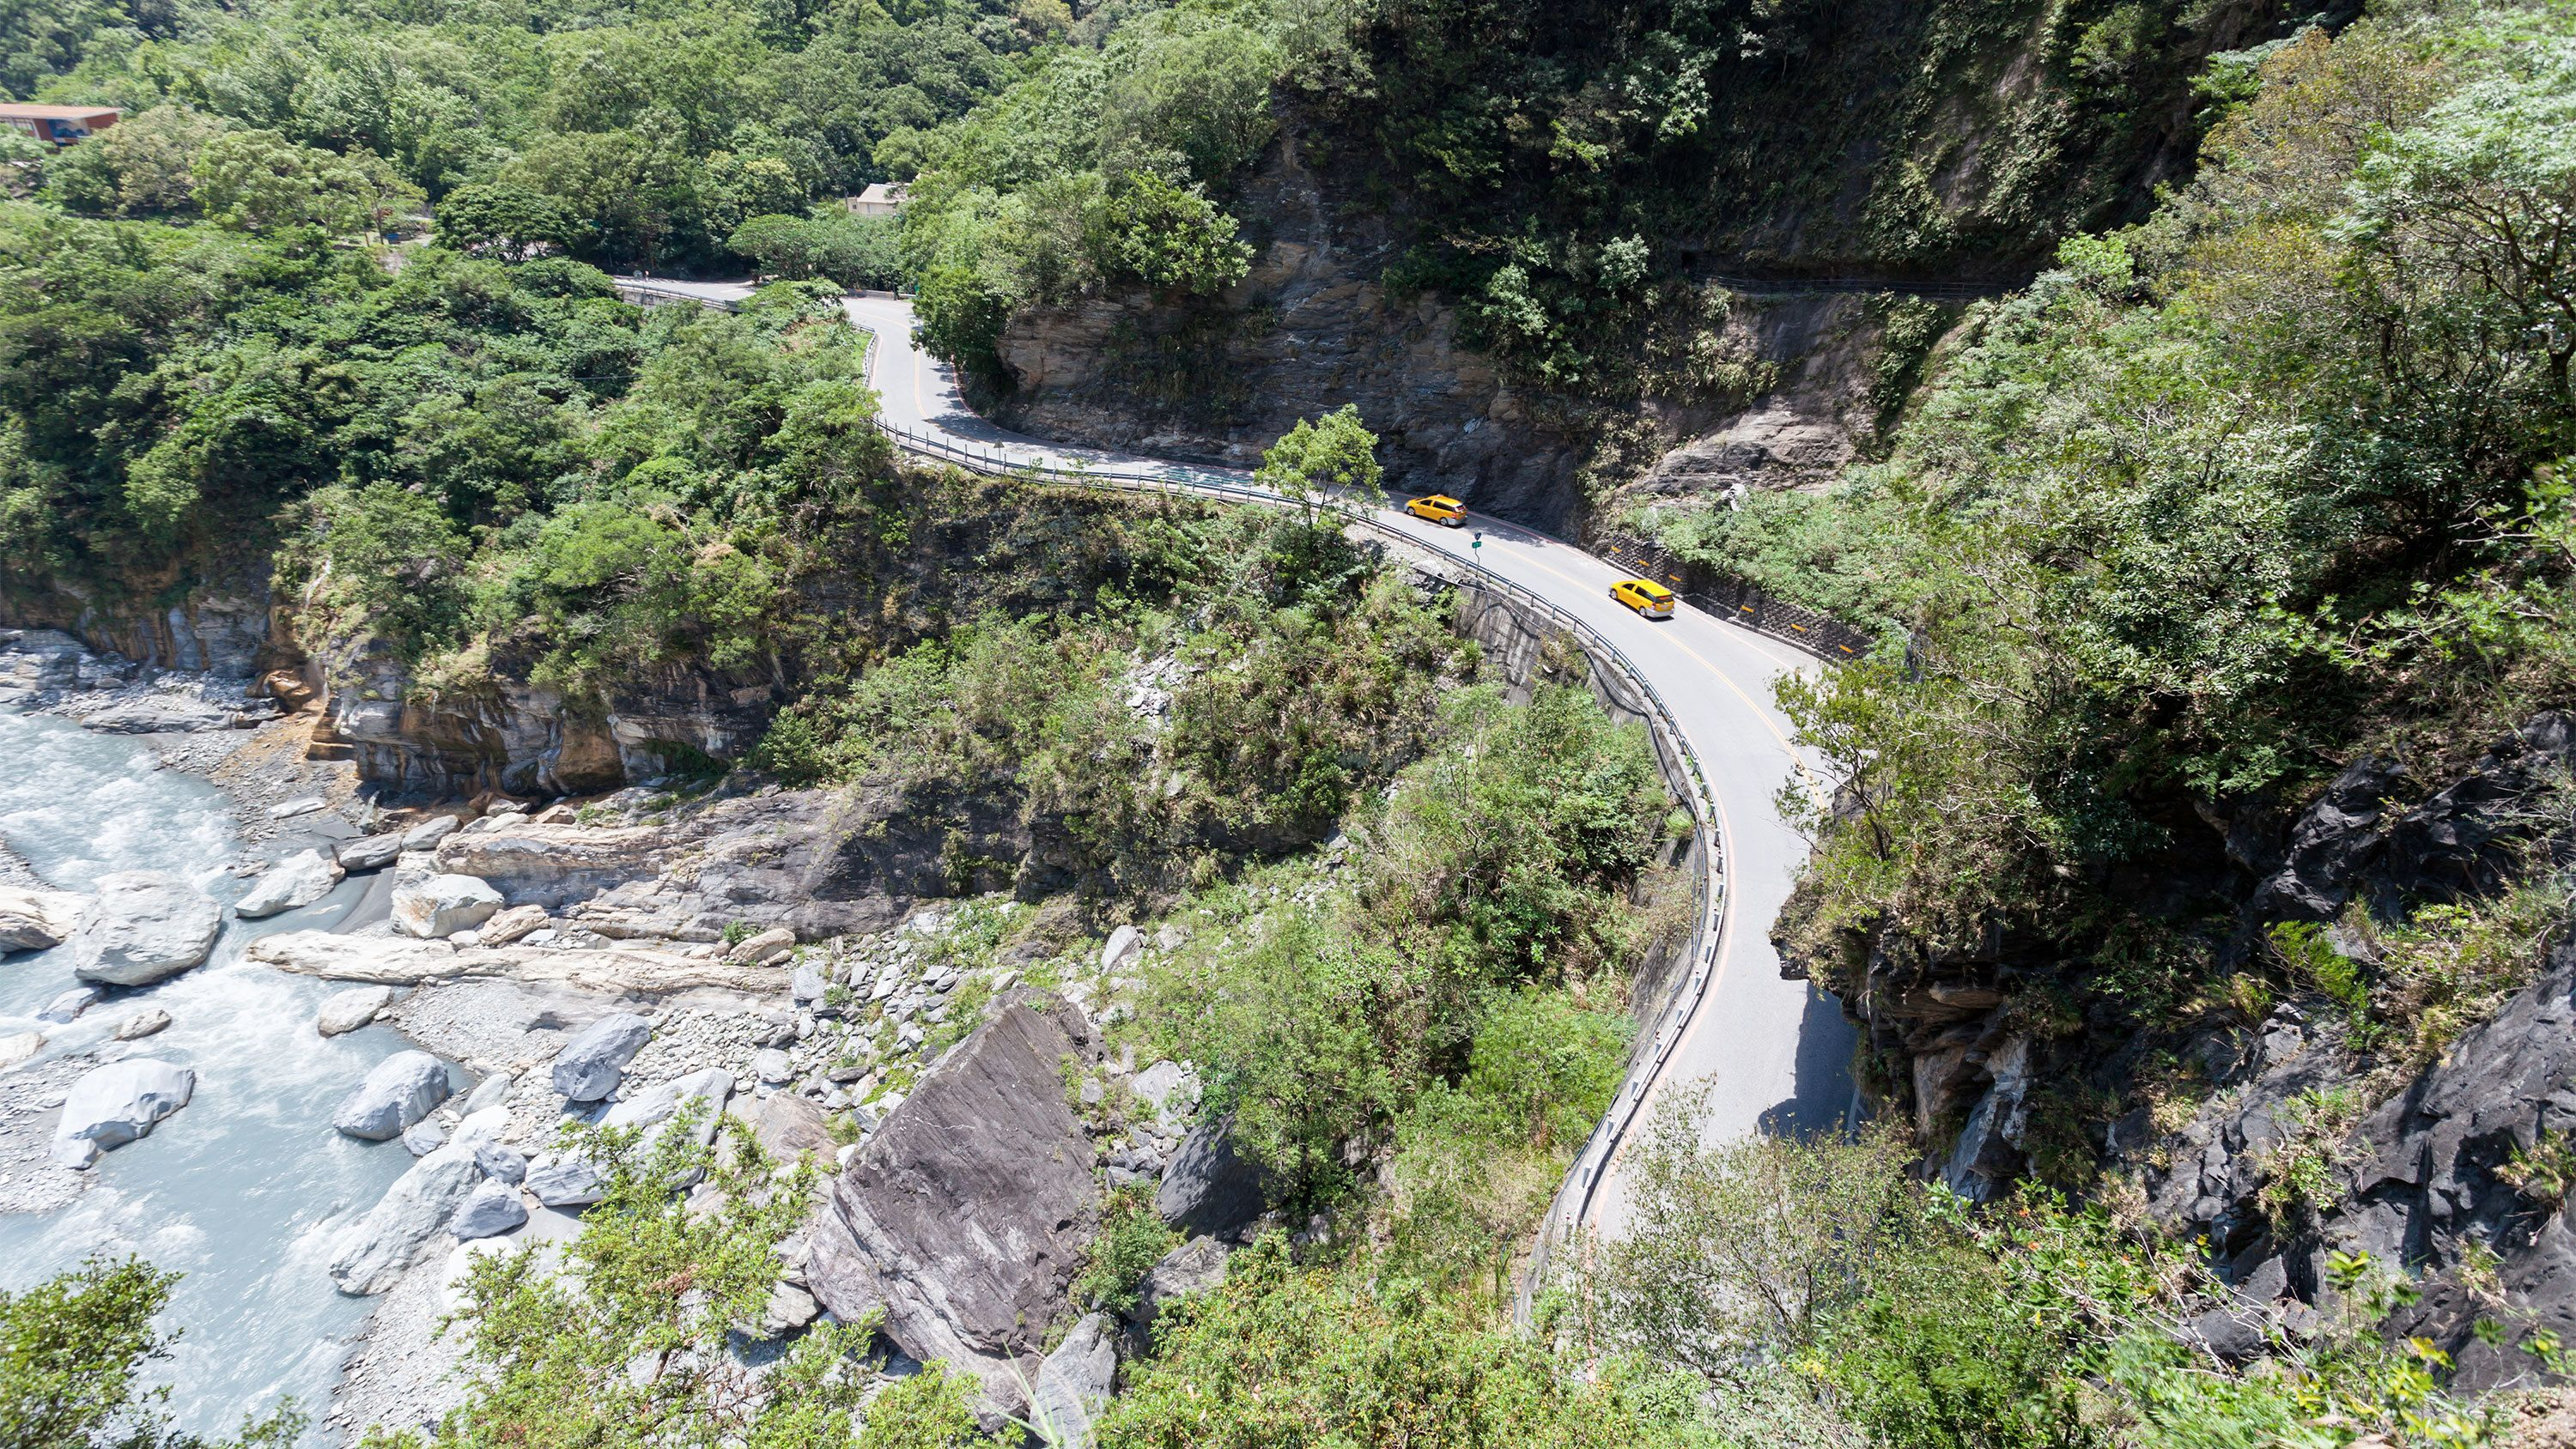 View of the Taroko Gorge Day Tour by Plane in Taiwan